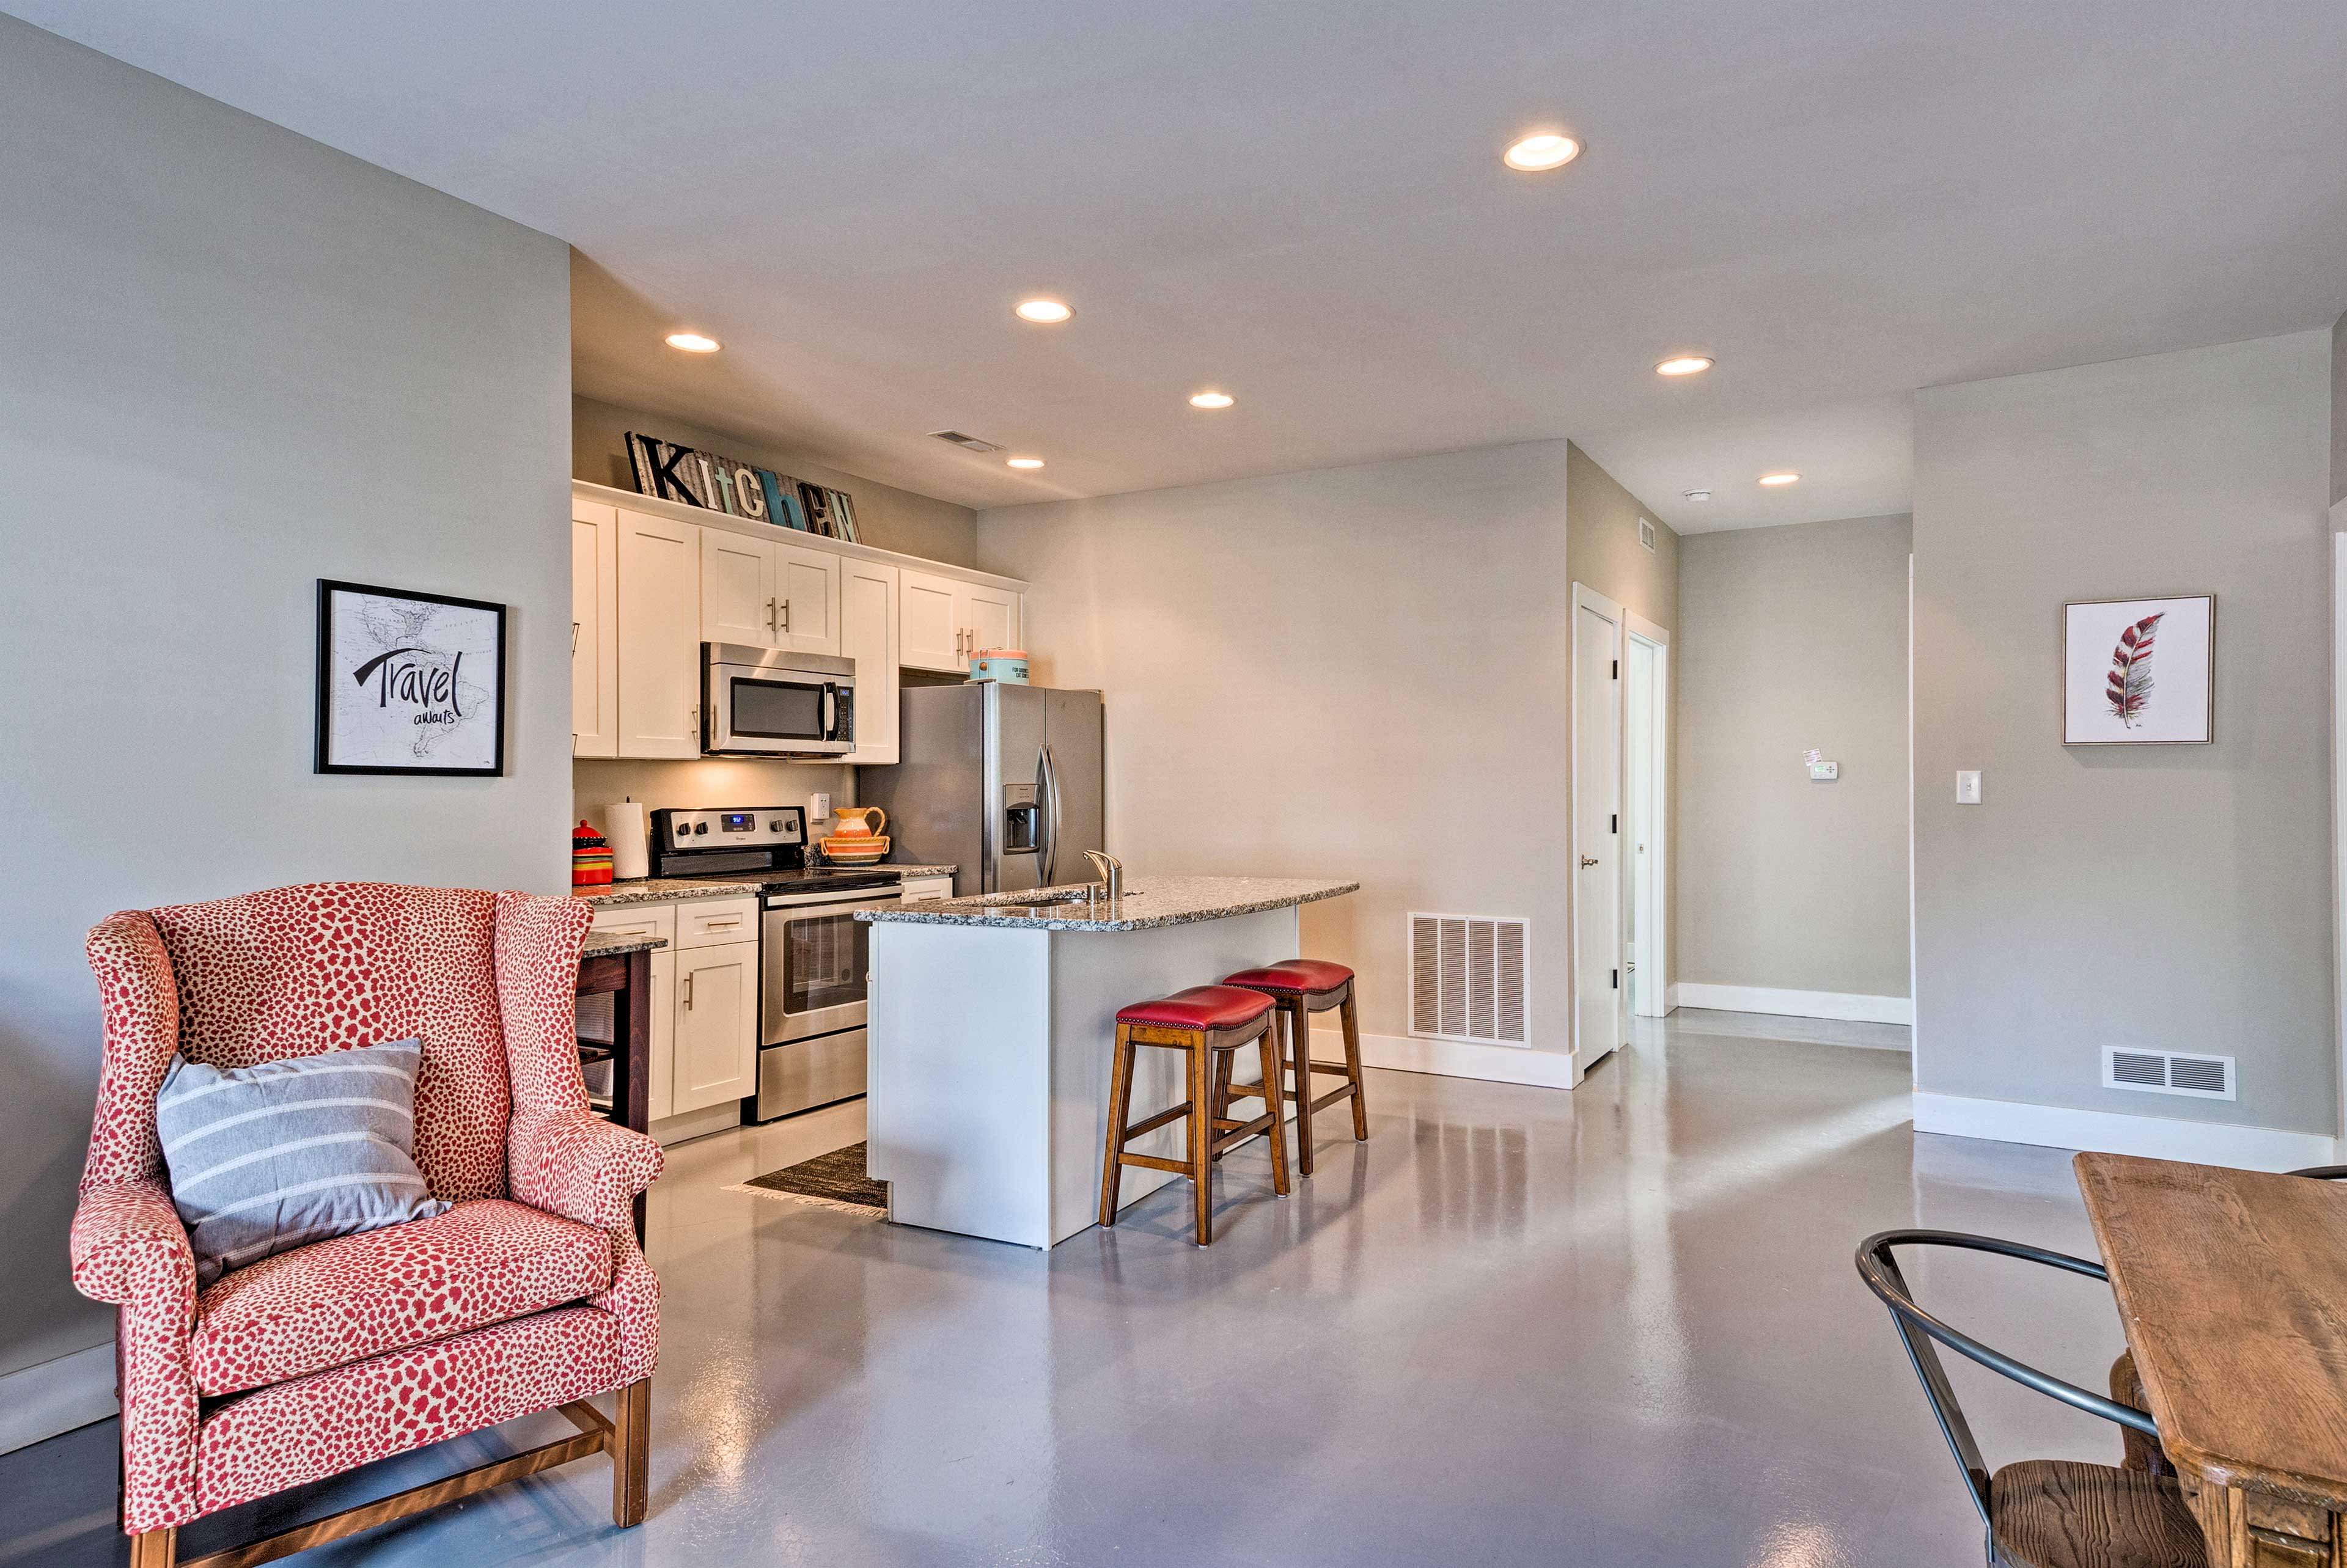 With an open floor plan, there is plenty of room to spread out.